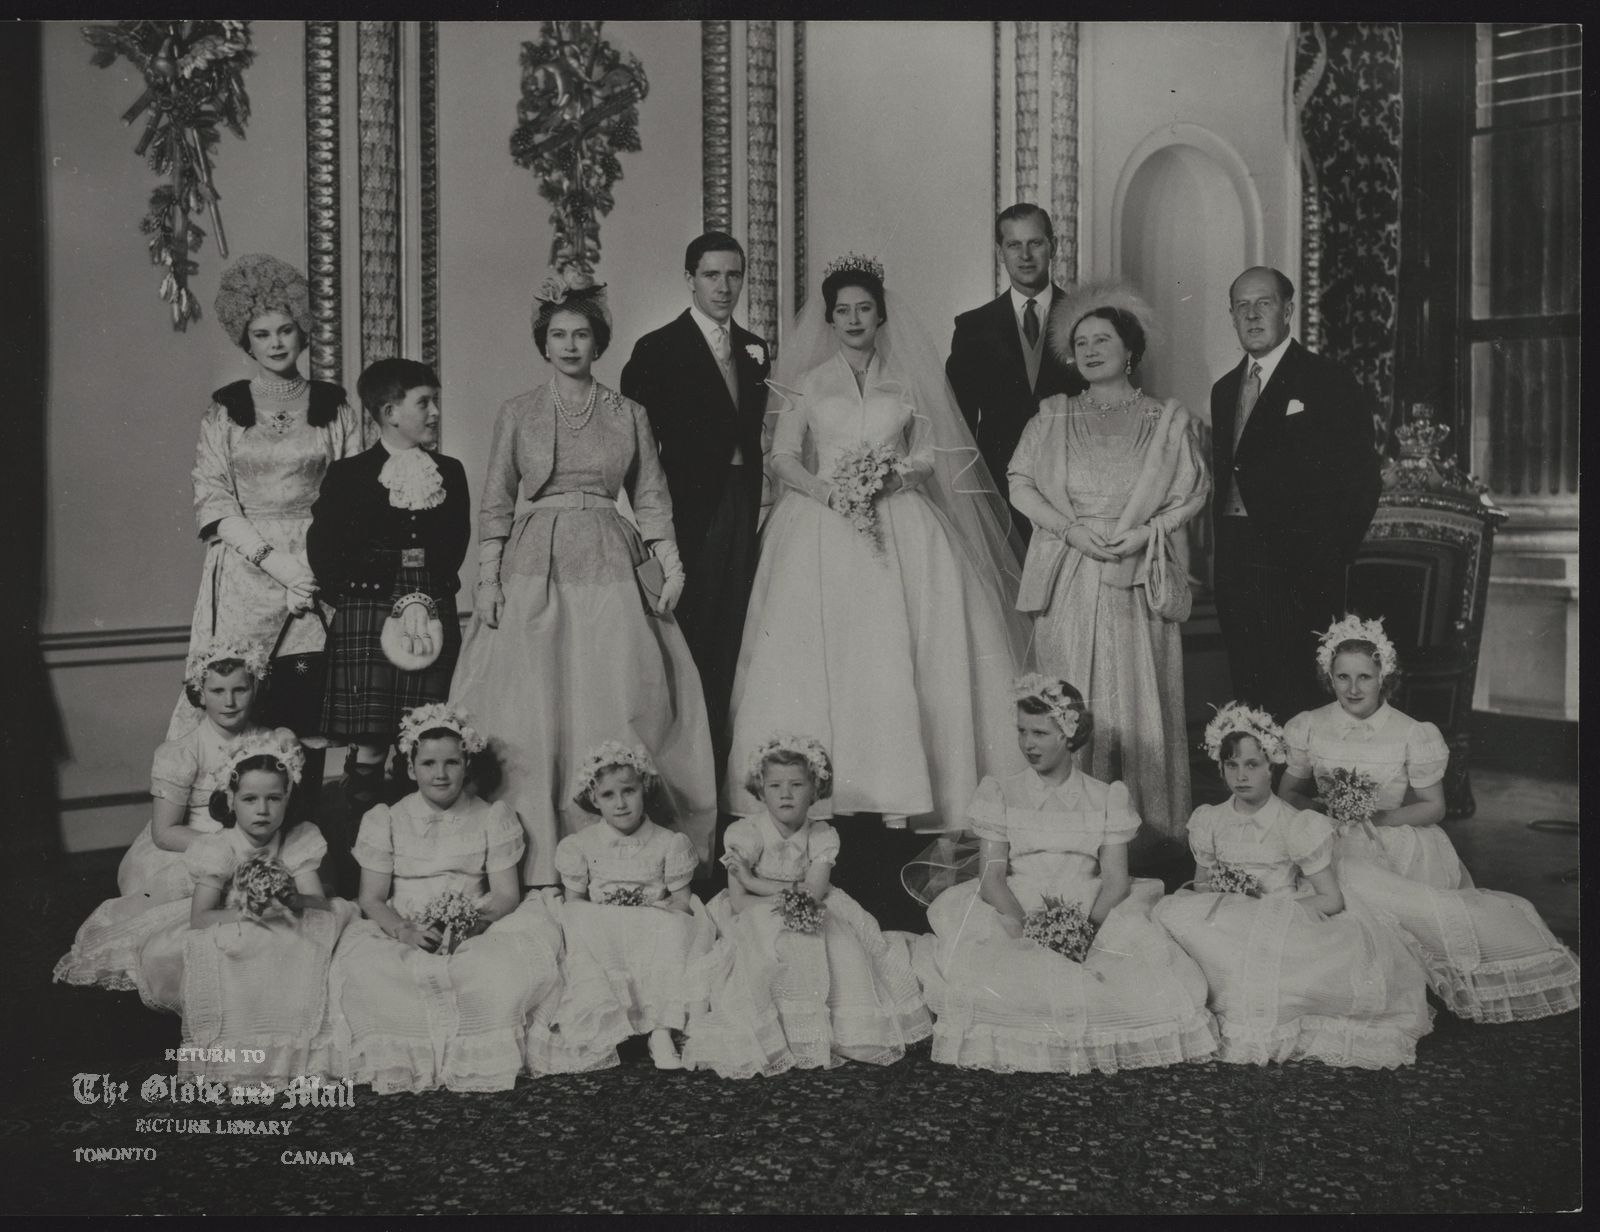 ROYAL FAMILY Great Britain Princess Margaret (Wedding) BRIDAL GROUP -- WEDDING GROUP IN THE THRONE ROOM OF BUCKINGHAM PALACE MAY 6, TAKEN BY PHOTOGRAPHER CECIL BEATON. STANDING LEFT TO RIGHT: COUNTESS OF ROSSE, PRINCE CHARLES, QUEEN ELIZABETH II; ANTONY ARMSTRONG-JONES; PRINCESS MARGARET; THE DUKE OF EDINBURGH, QUEEN ELIZABETH THE QUEEN MOTHER; AND MR. RONALD ARMSTRONG-JONES. EIGHT BRIDESMAIDS SEATED LEFT TO RIGHT; LADY ROSE NEVILL; SARAH LOWTHER; ANNABEL RHODES; CATHERINE VESEY; LADY VIRGINIA FITZROY; PRINCESS ANNE; ANGELA NEVILL; AND MARILYN WILLS.